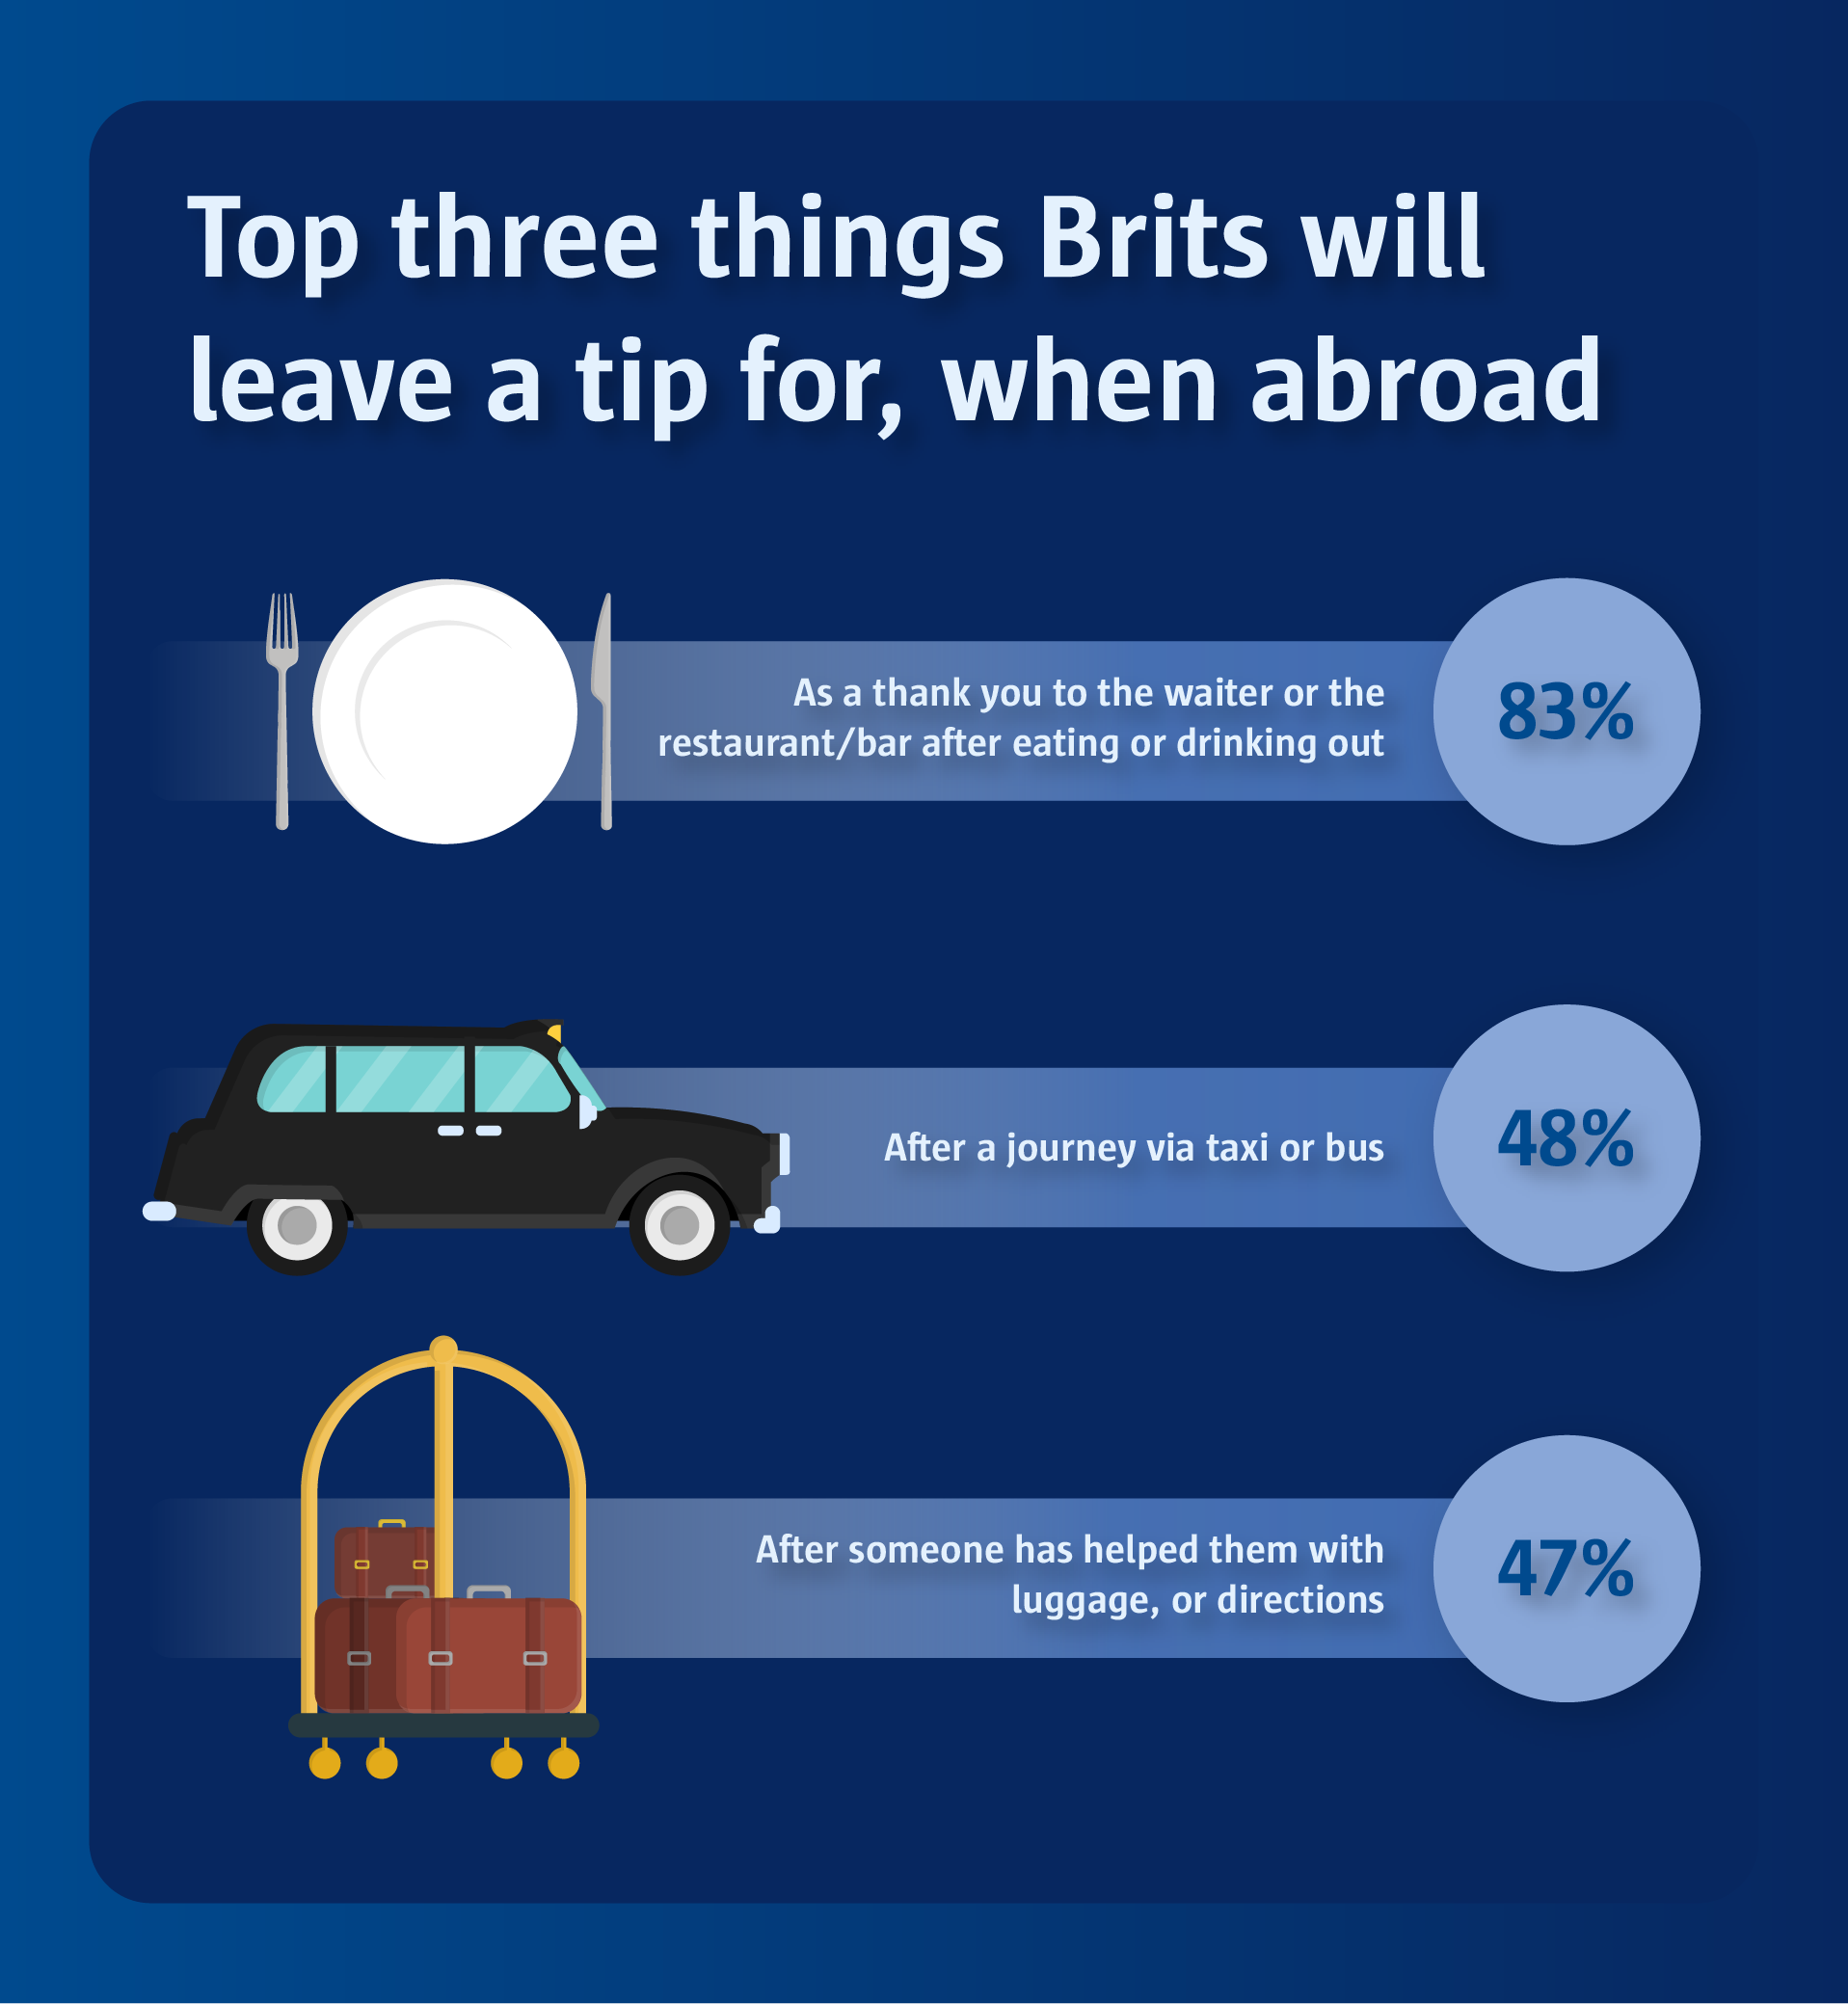 Top three things Brits will leave a tip for, when abroad